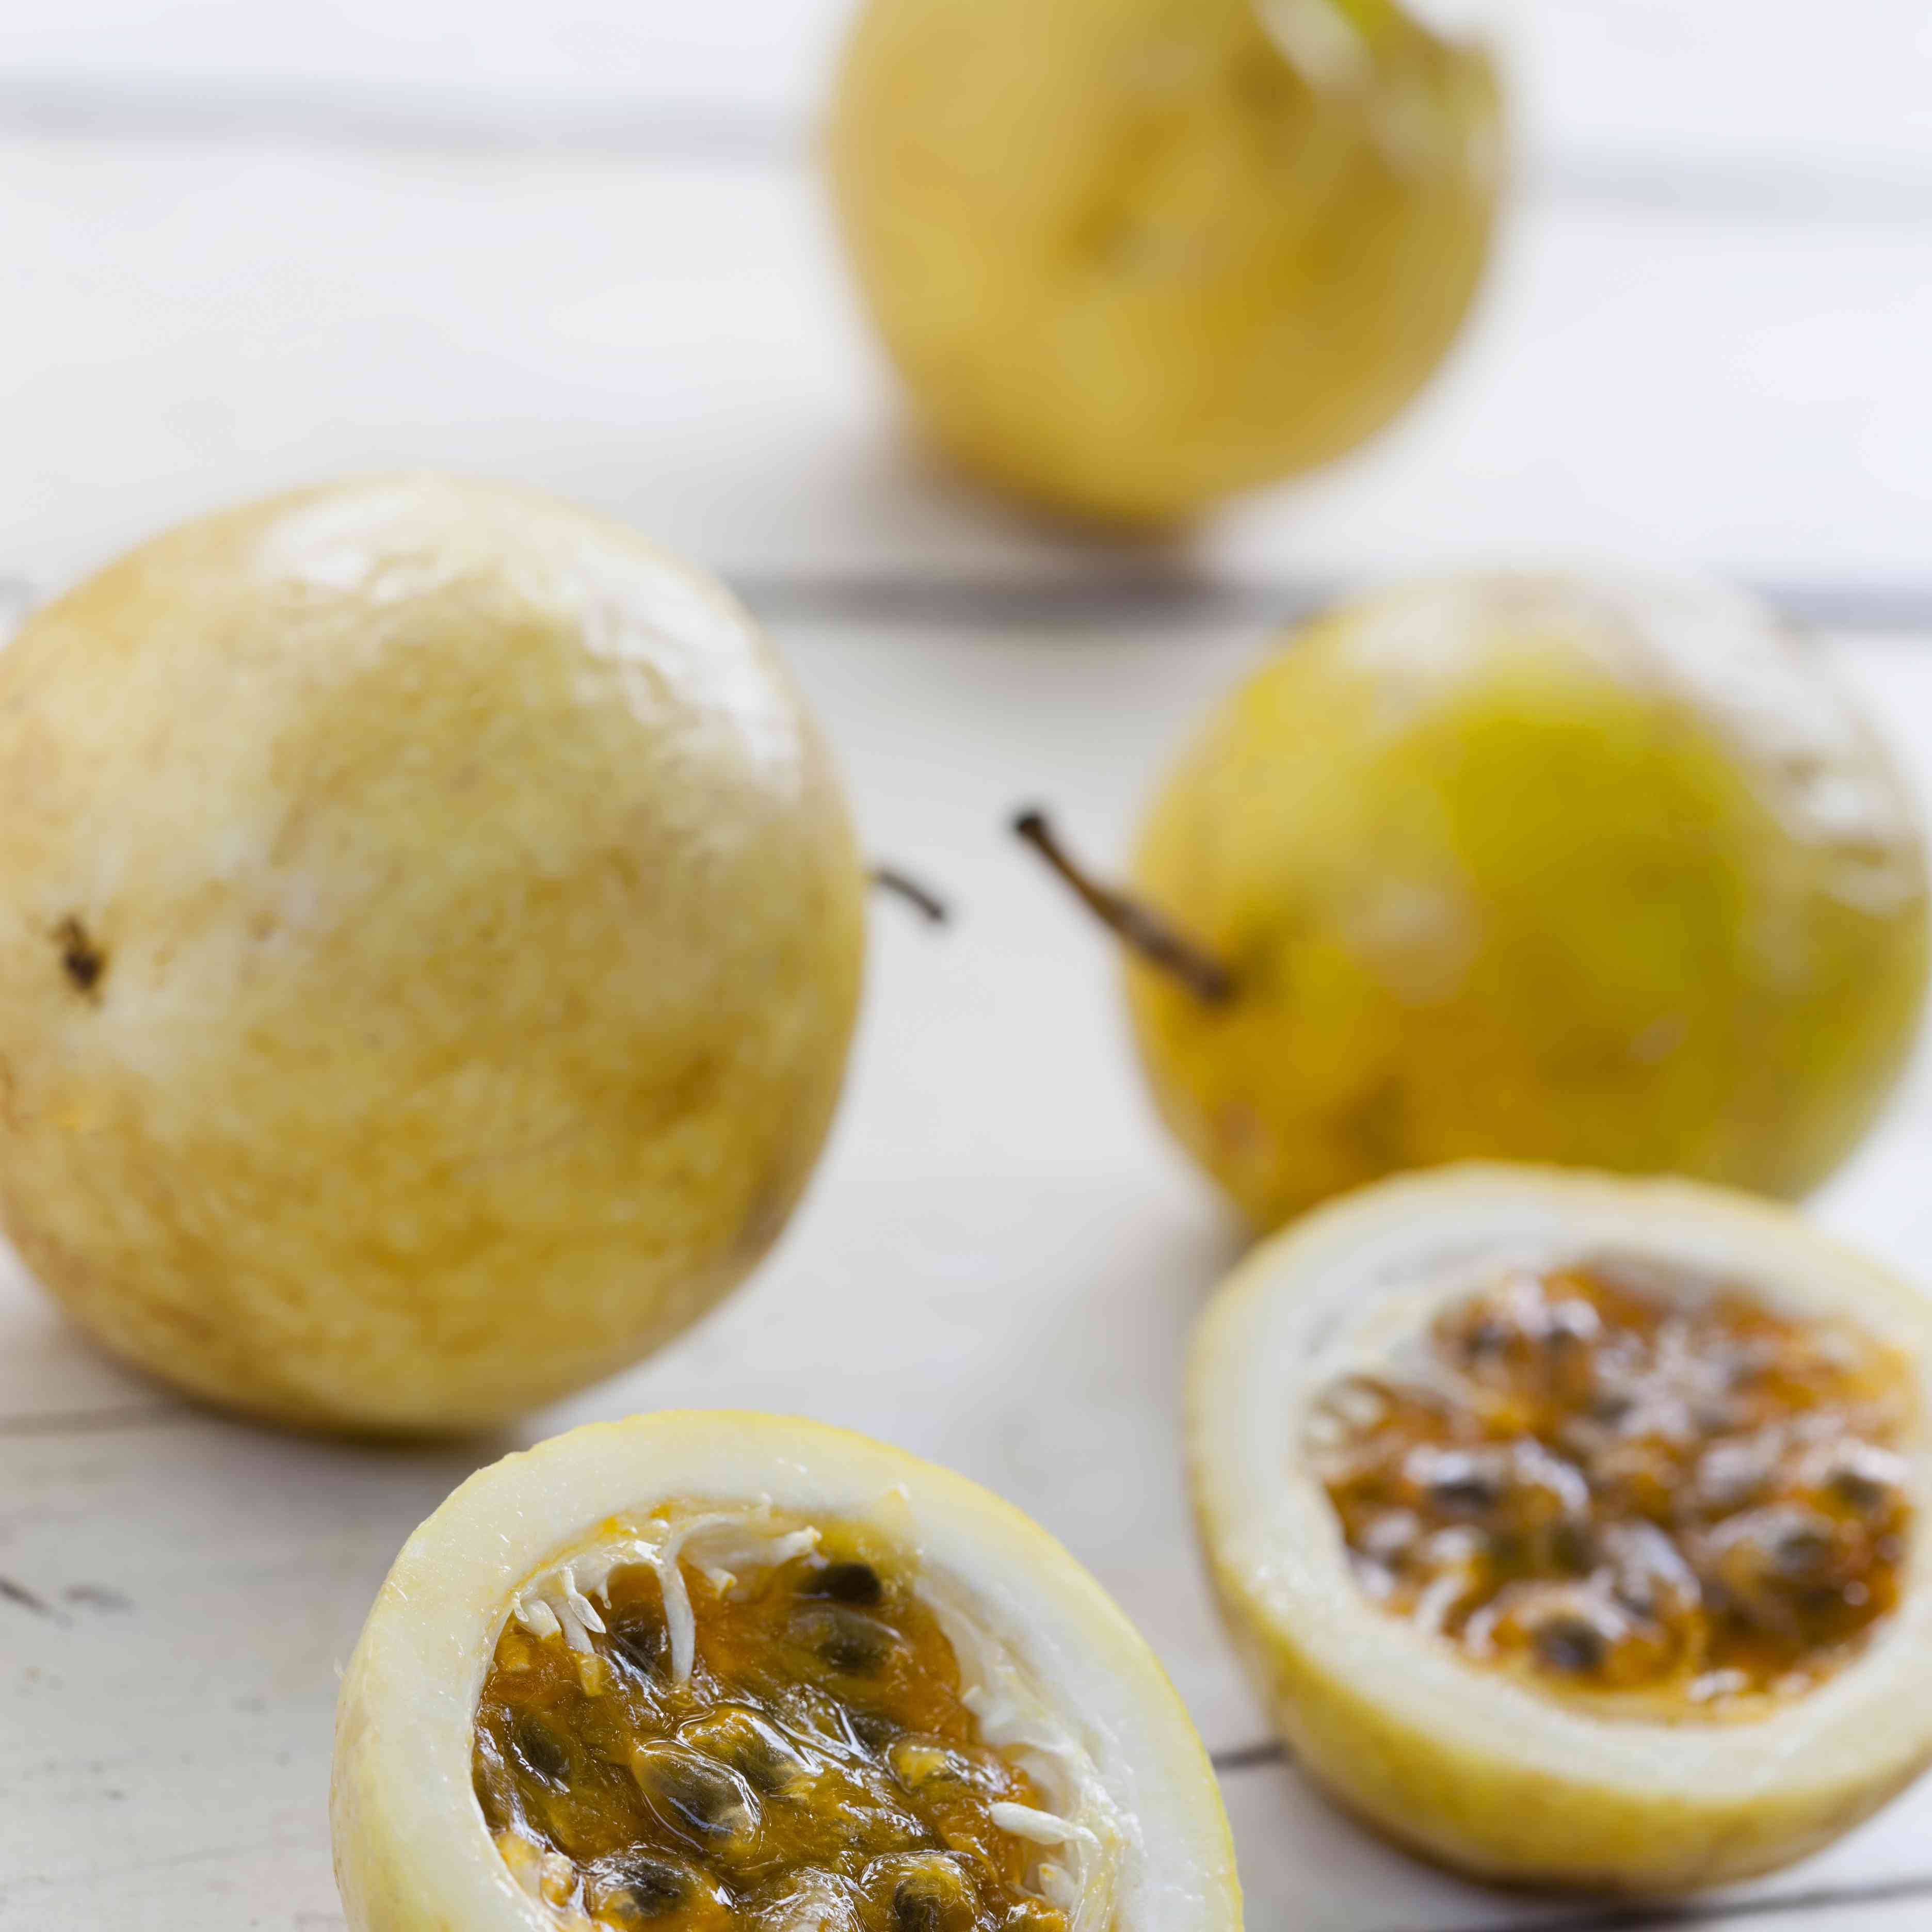 Passion fruit on a table.